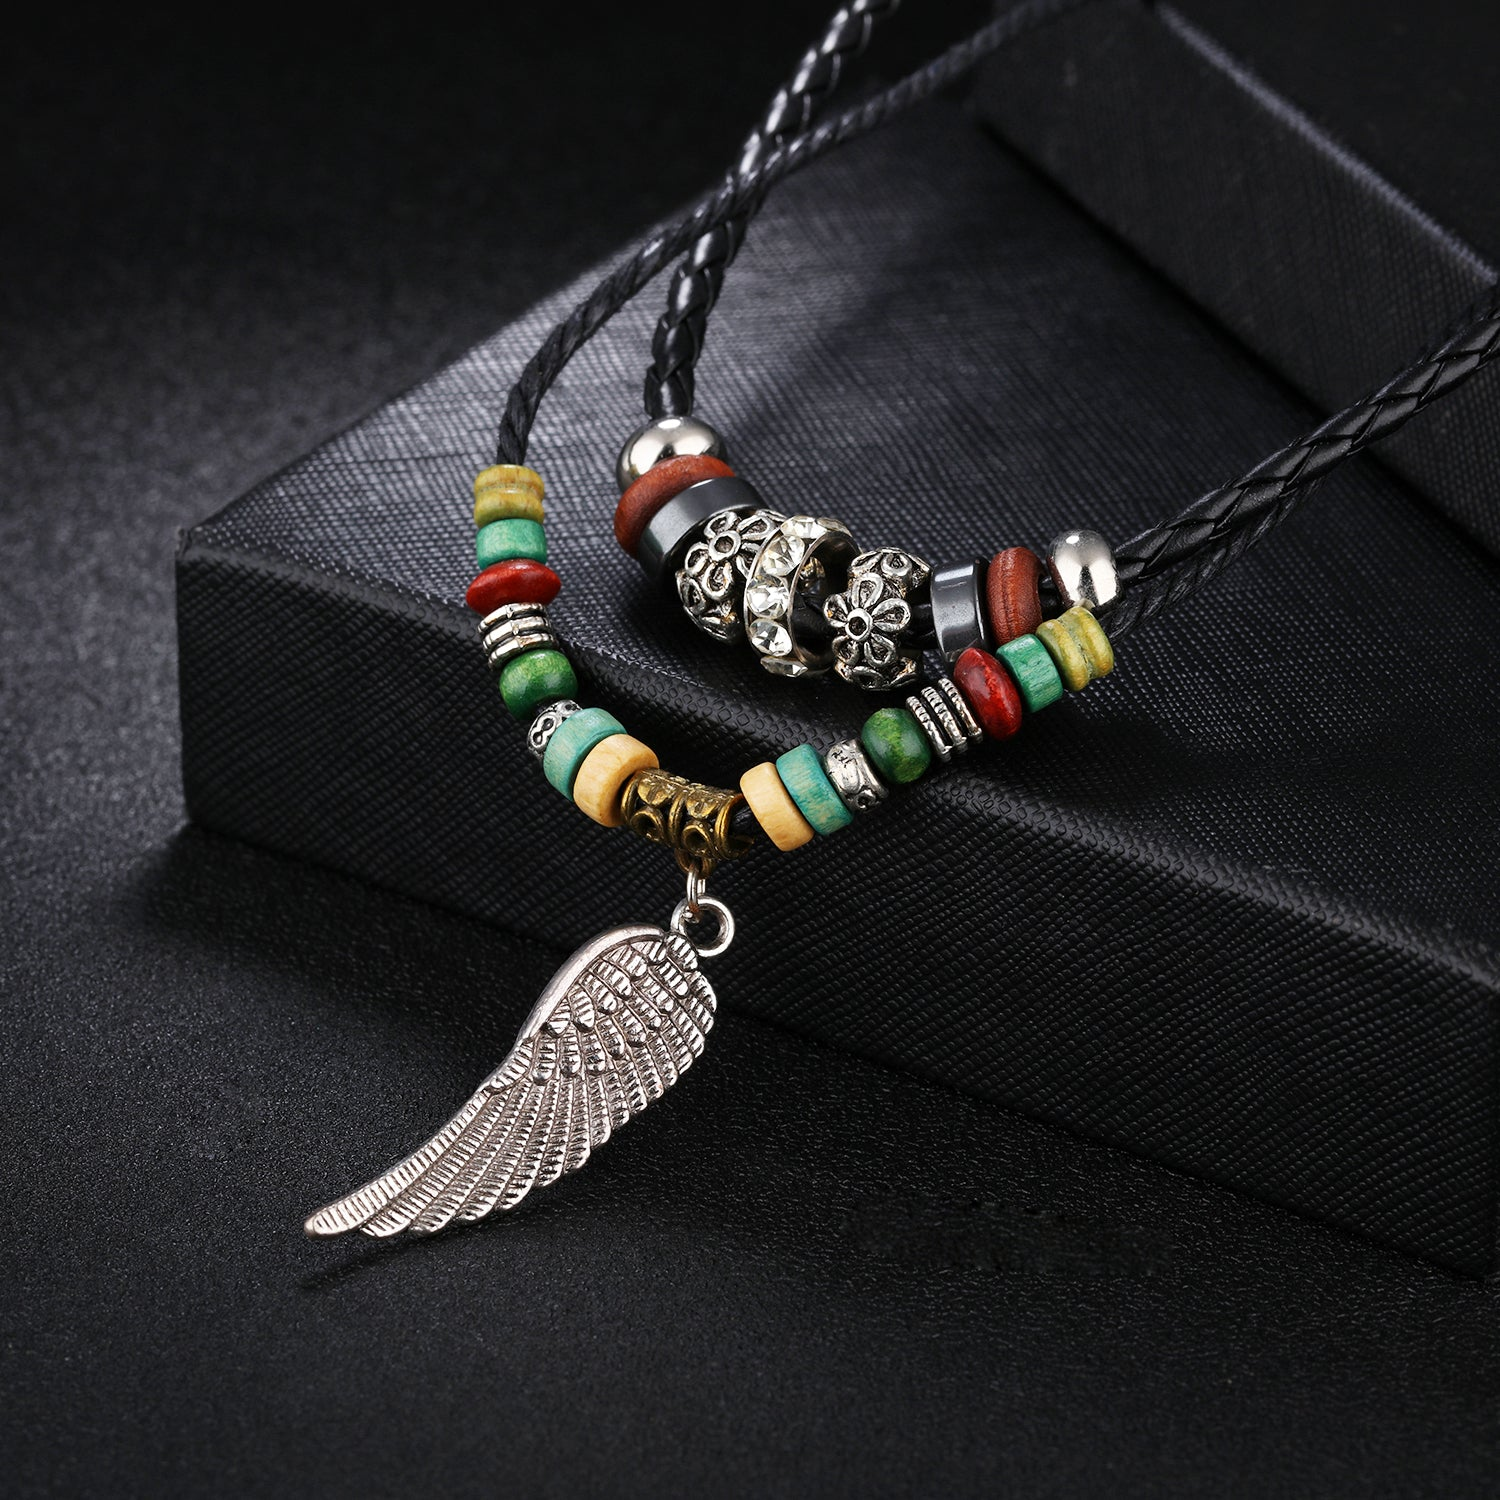 gad necklace image feather products rope regalia braided leather product